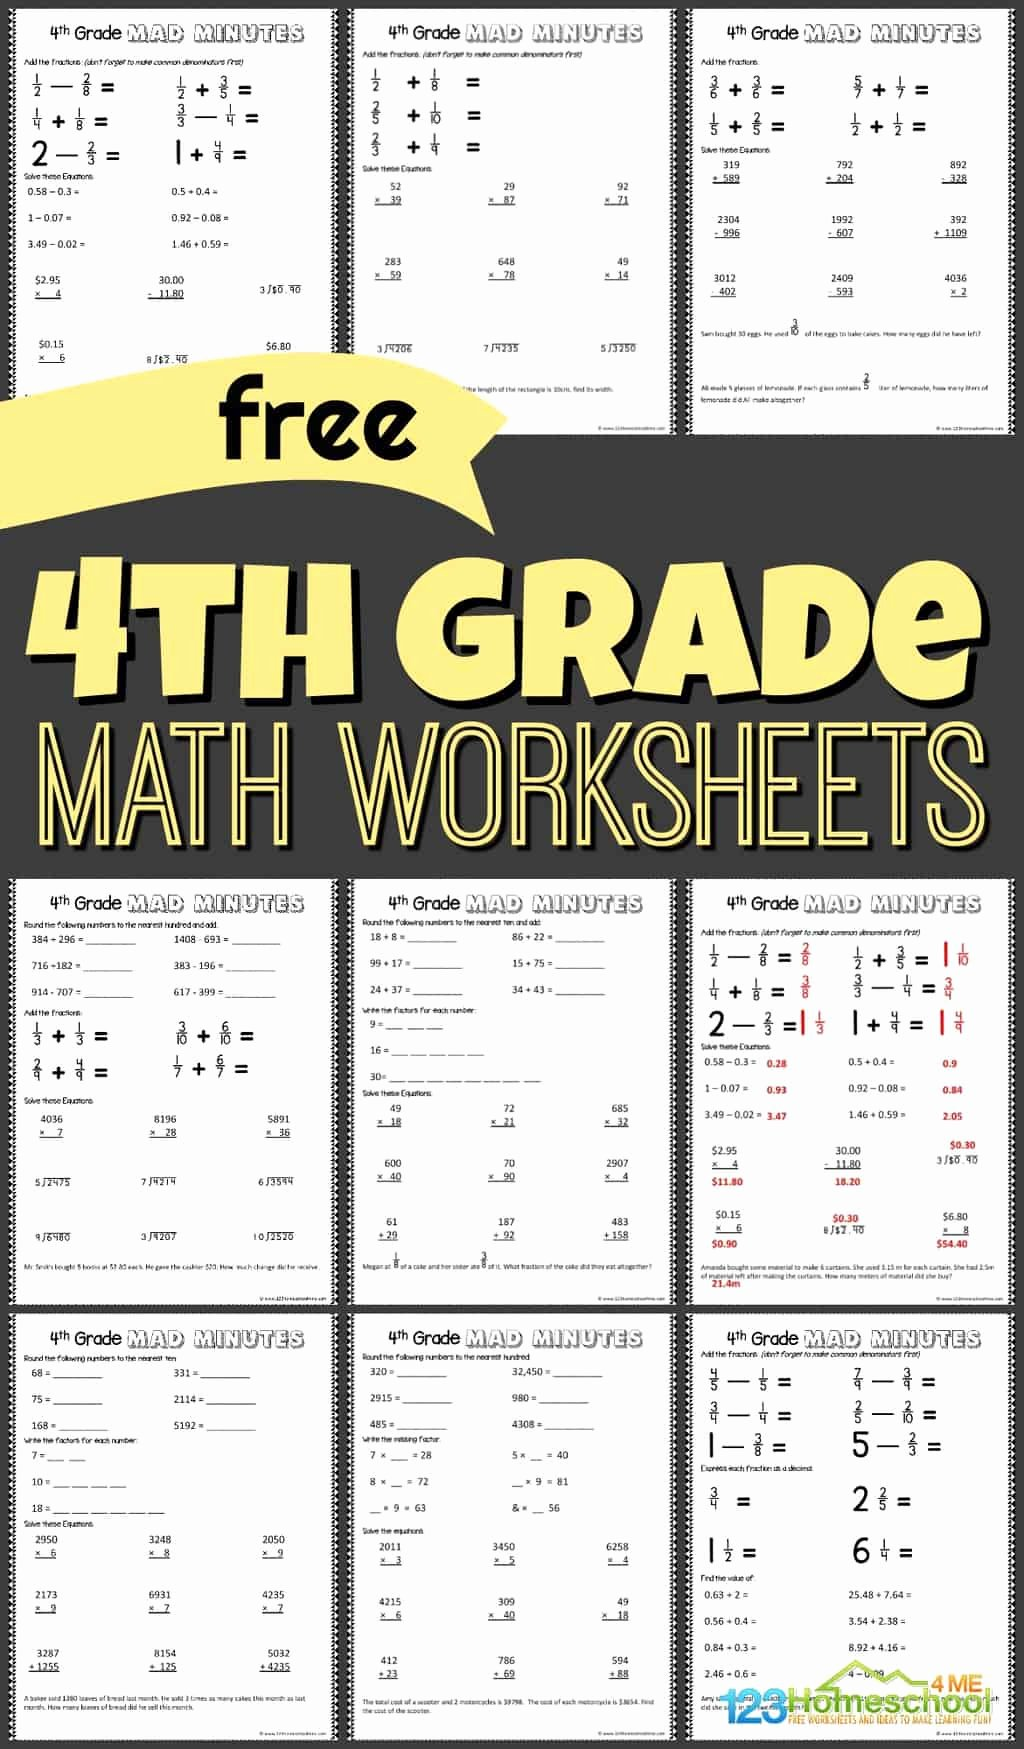 Go Math Grade 4 Worksheets Kids Free 4th Grade Math Worksheets for Fourth Graders to Practice